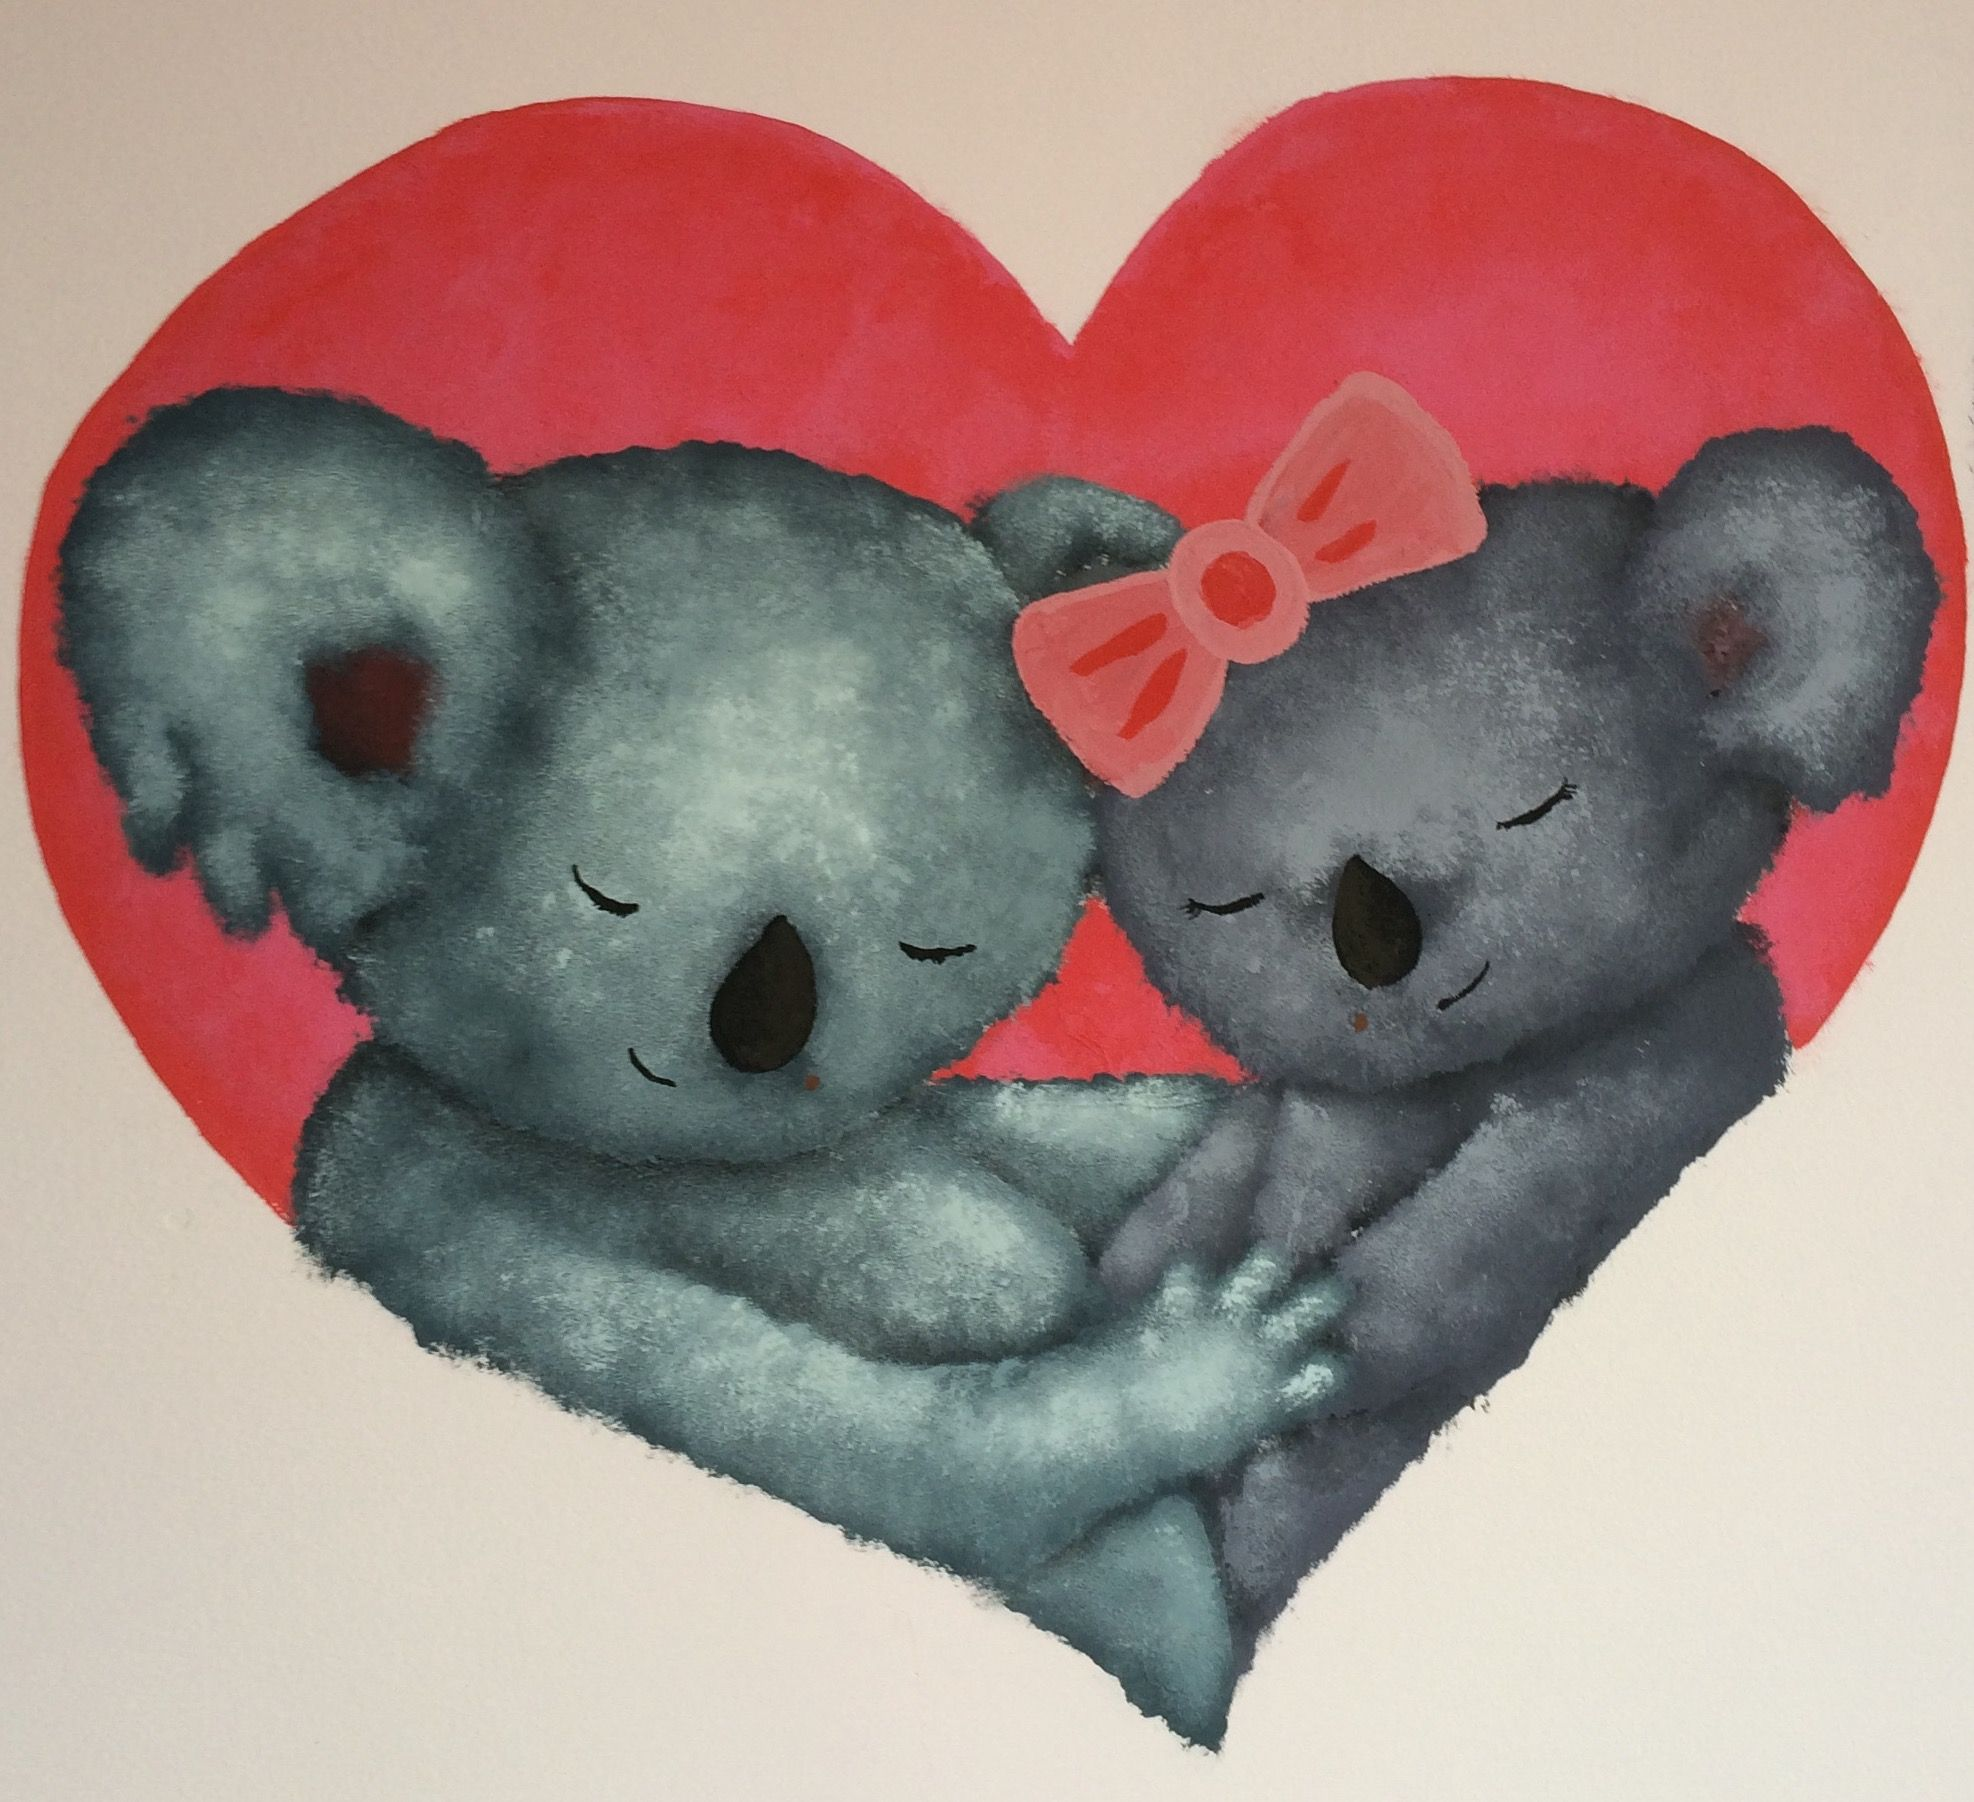 koala love illustration pinterest animal reptiles and insects